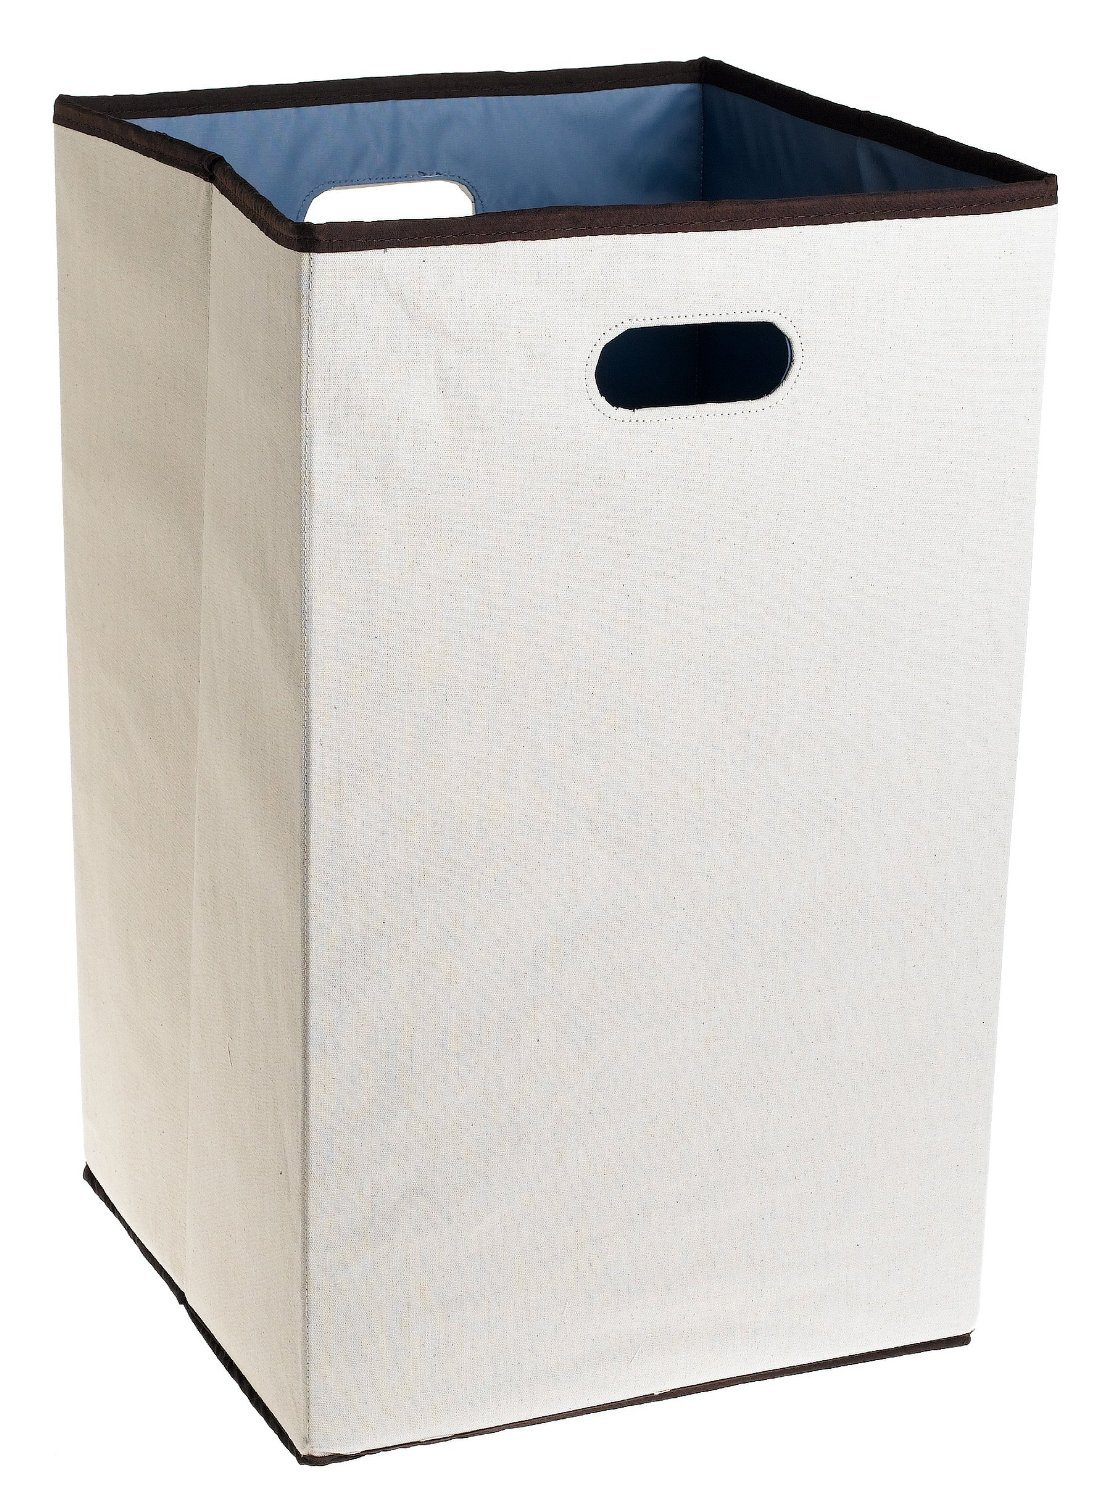 Amazon.com: Rubbermaid Configurations Custom Closet Folding Laundry Hamper,  Natural, 23 In., (FG4D0602NATUR): Home U0026 Kitchen